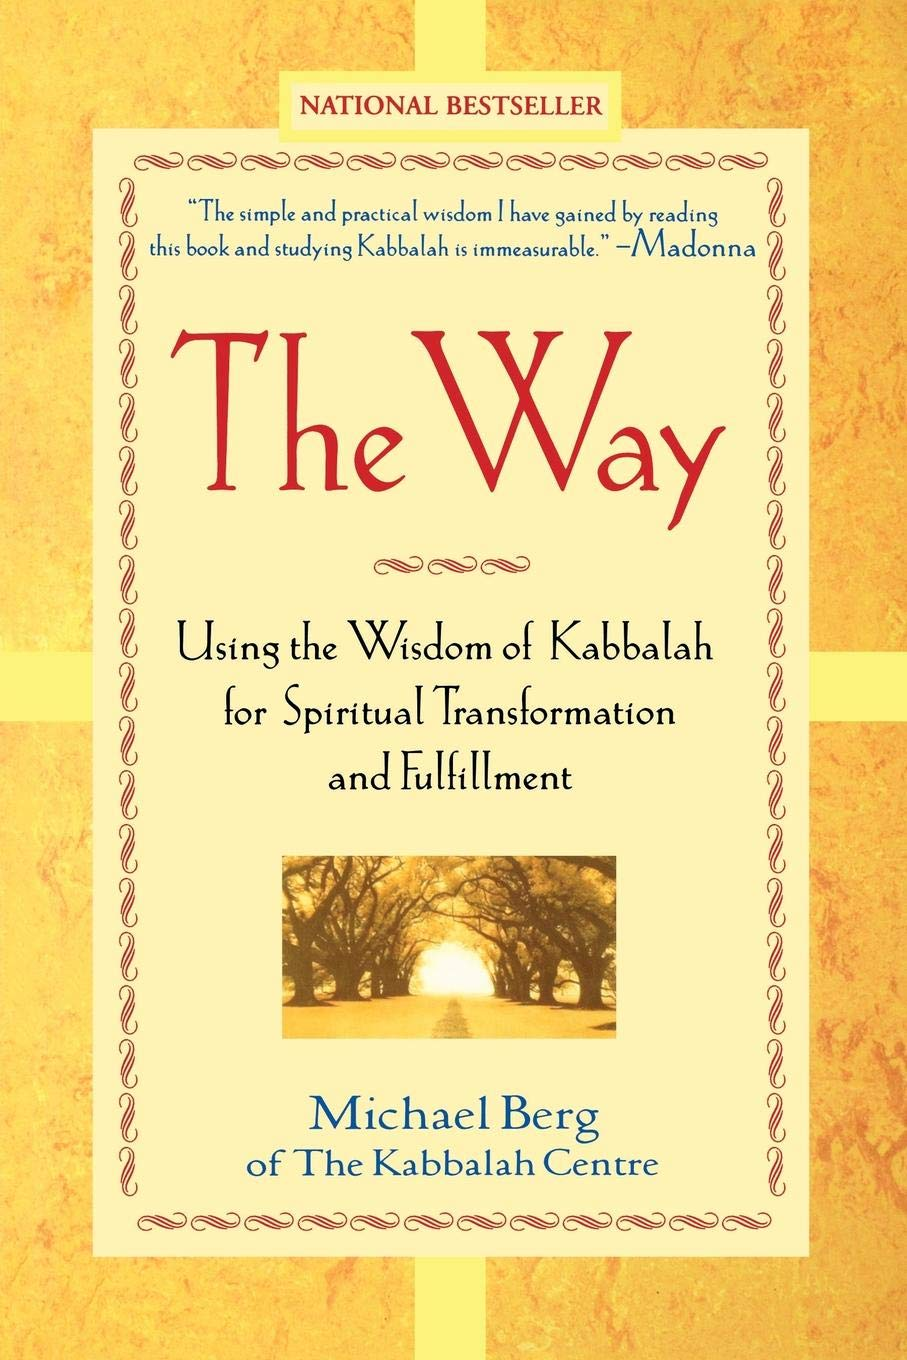 The Way: Using the Wisdom of Kabbalah for Spiritual